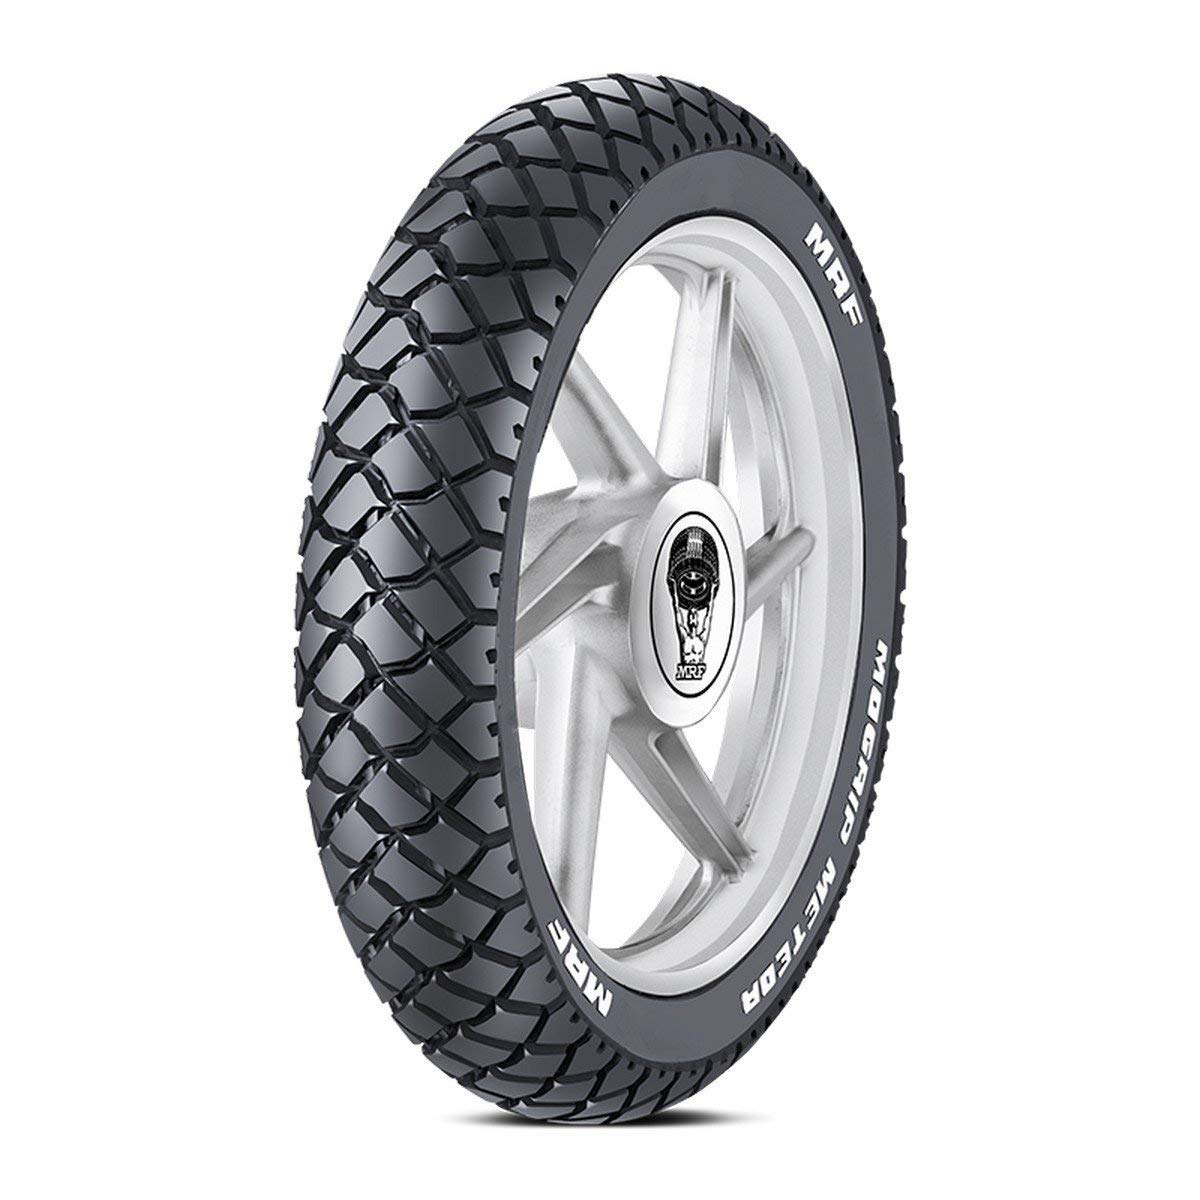 MRF METEOR 100/90 17 Tubeless 55 P Rear Two-Wheeler Tyre